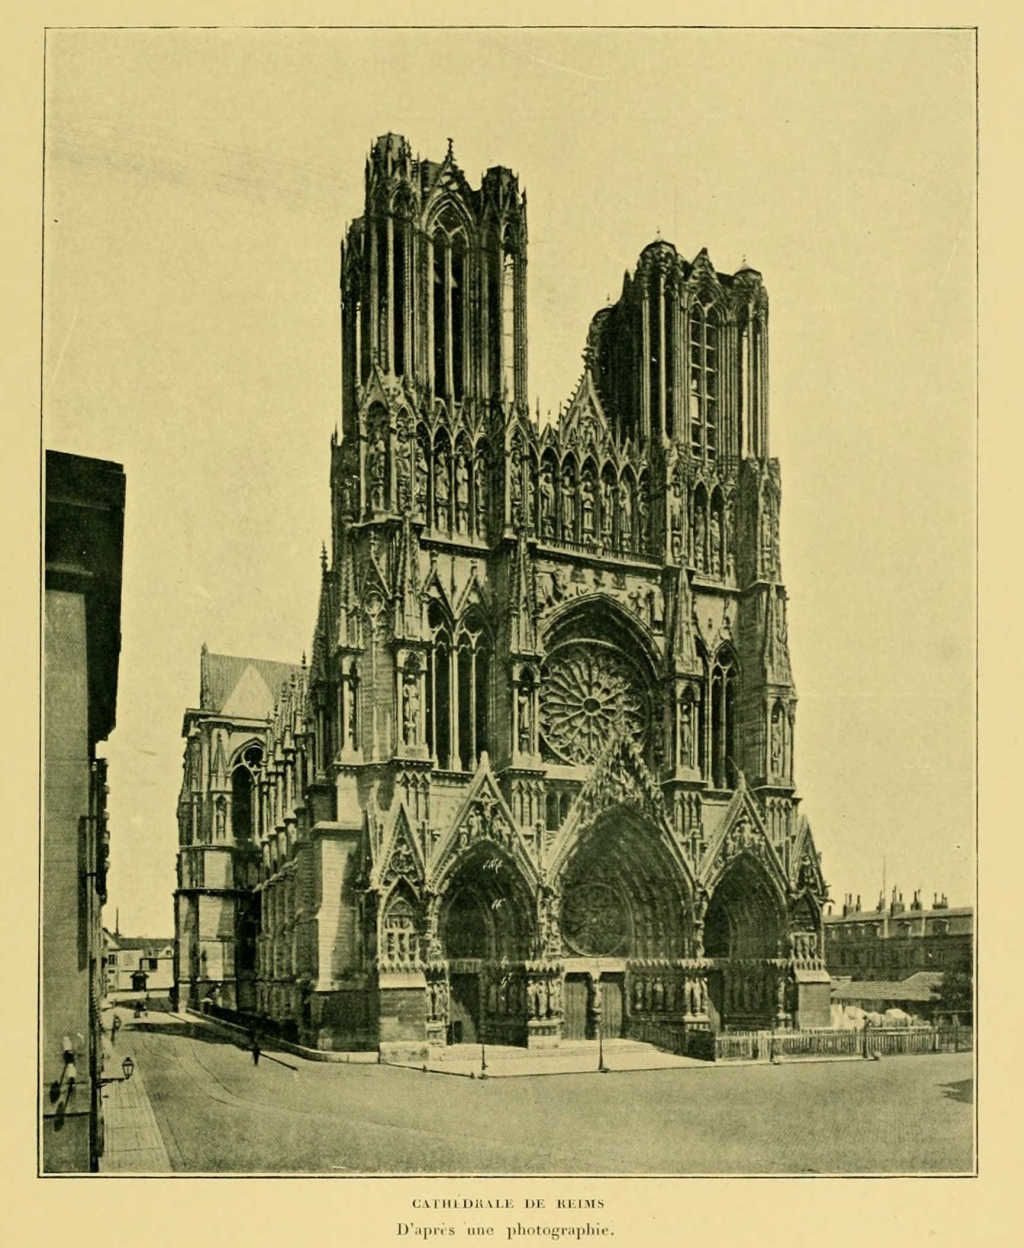 Vie de Jeanne d'Arc : cathedrale de reims